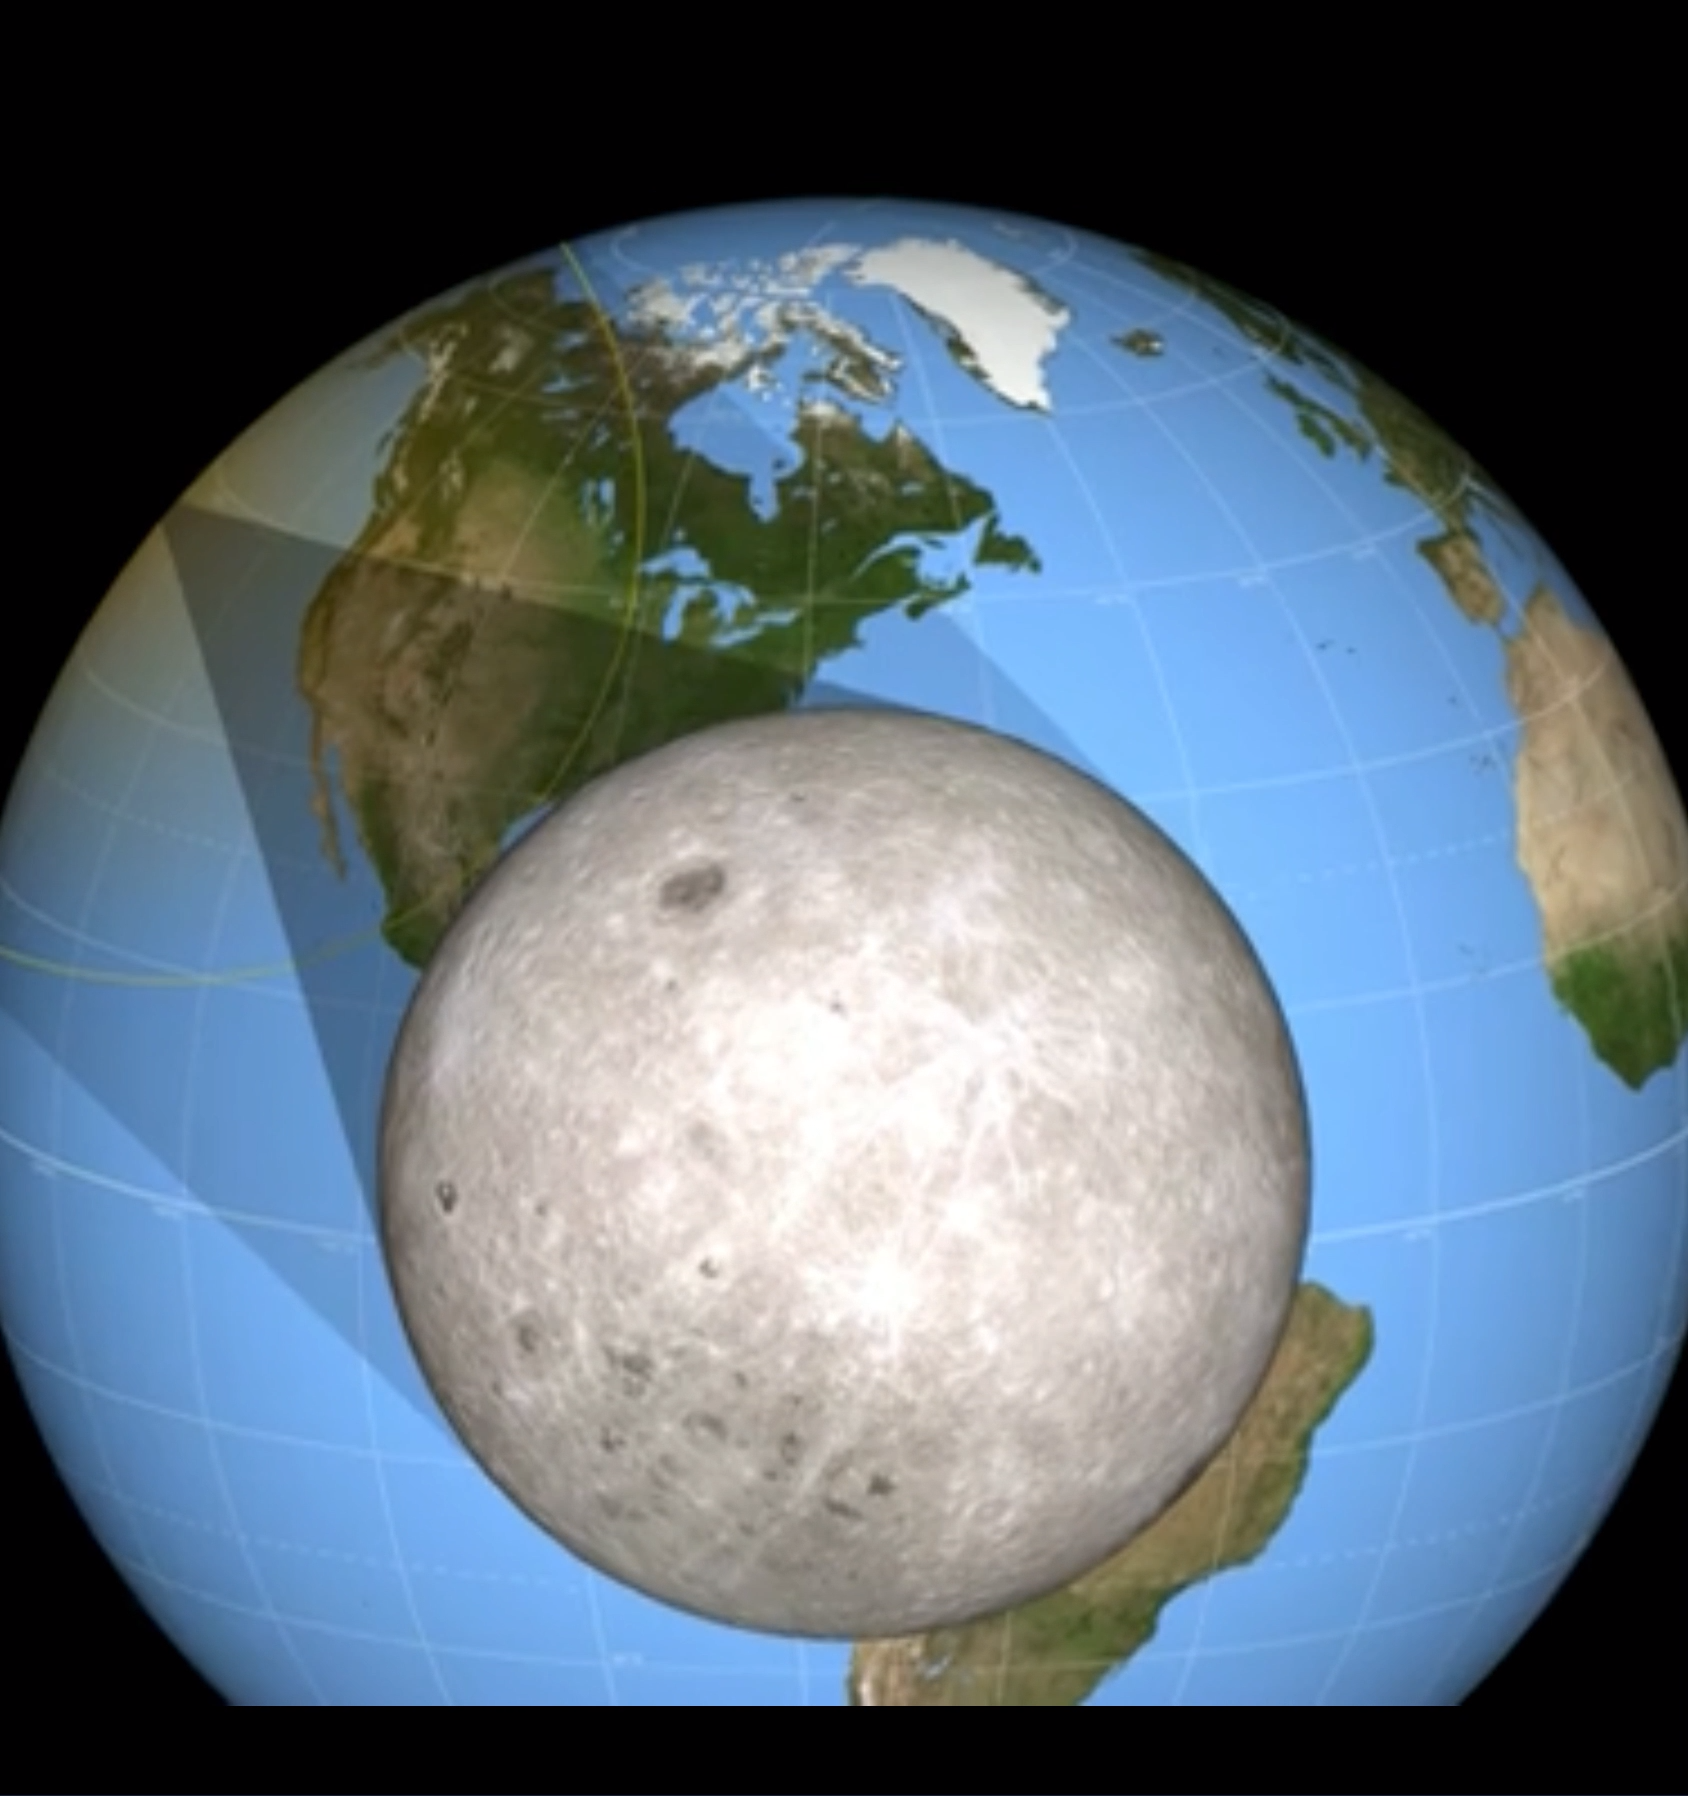 The shadow comprises two concentric cones called the umbra and the penumbra. Within the smaller, central umbra, the Sun is completely blocked by the Moon, and anyone inside the umbra sees a total eclipse. Within the larger penumbra, the Sun is only partially blocked.  #nasa #solareclipse #eclipse #visualization #Nasa #moon #sun #space #inspiration #cosmos #universe #rocket #outerspace #science #learning #education #mars #geek #nerd #marswalkers